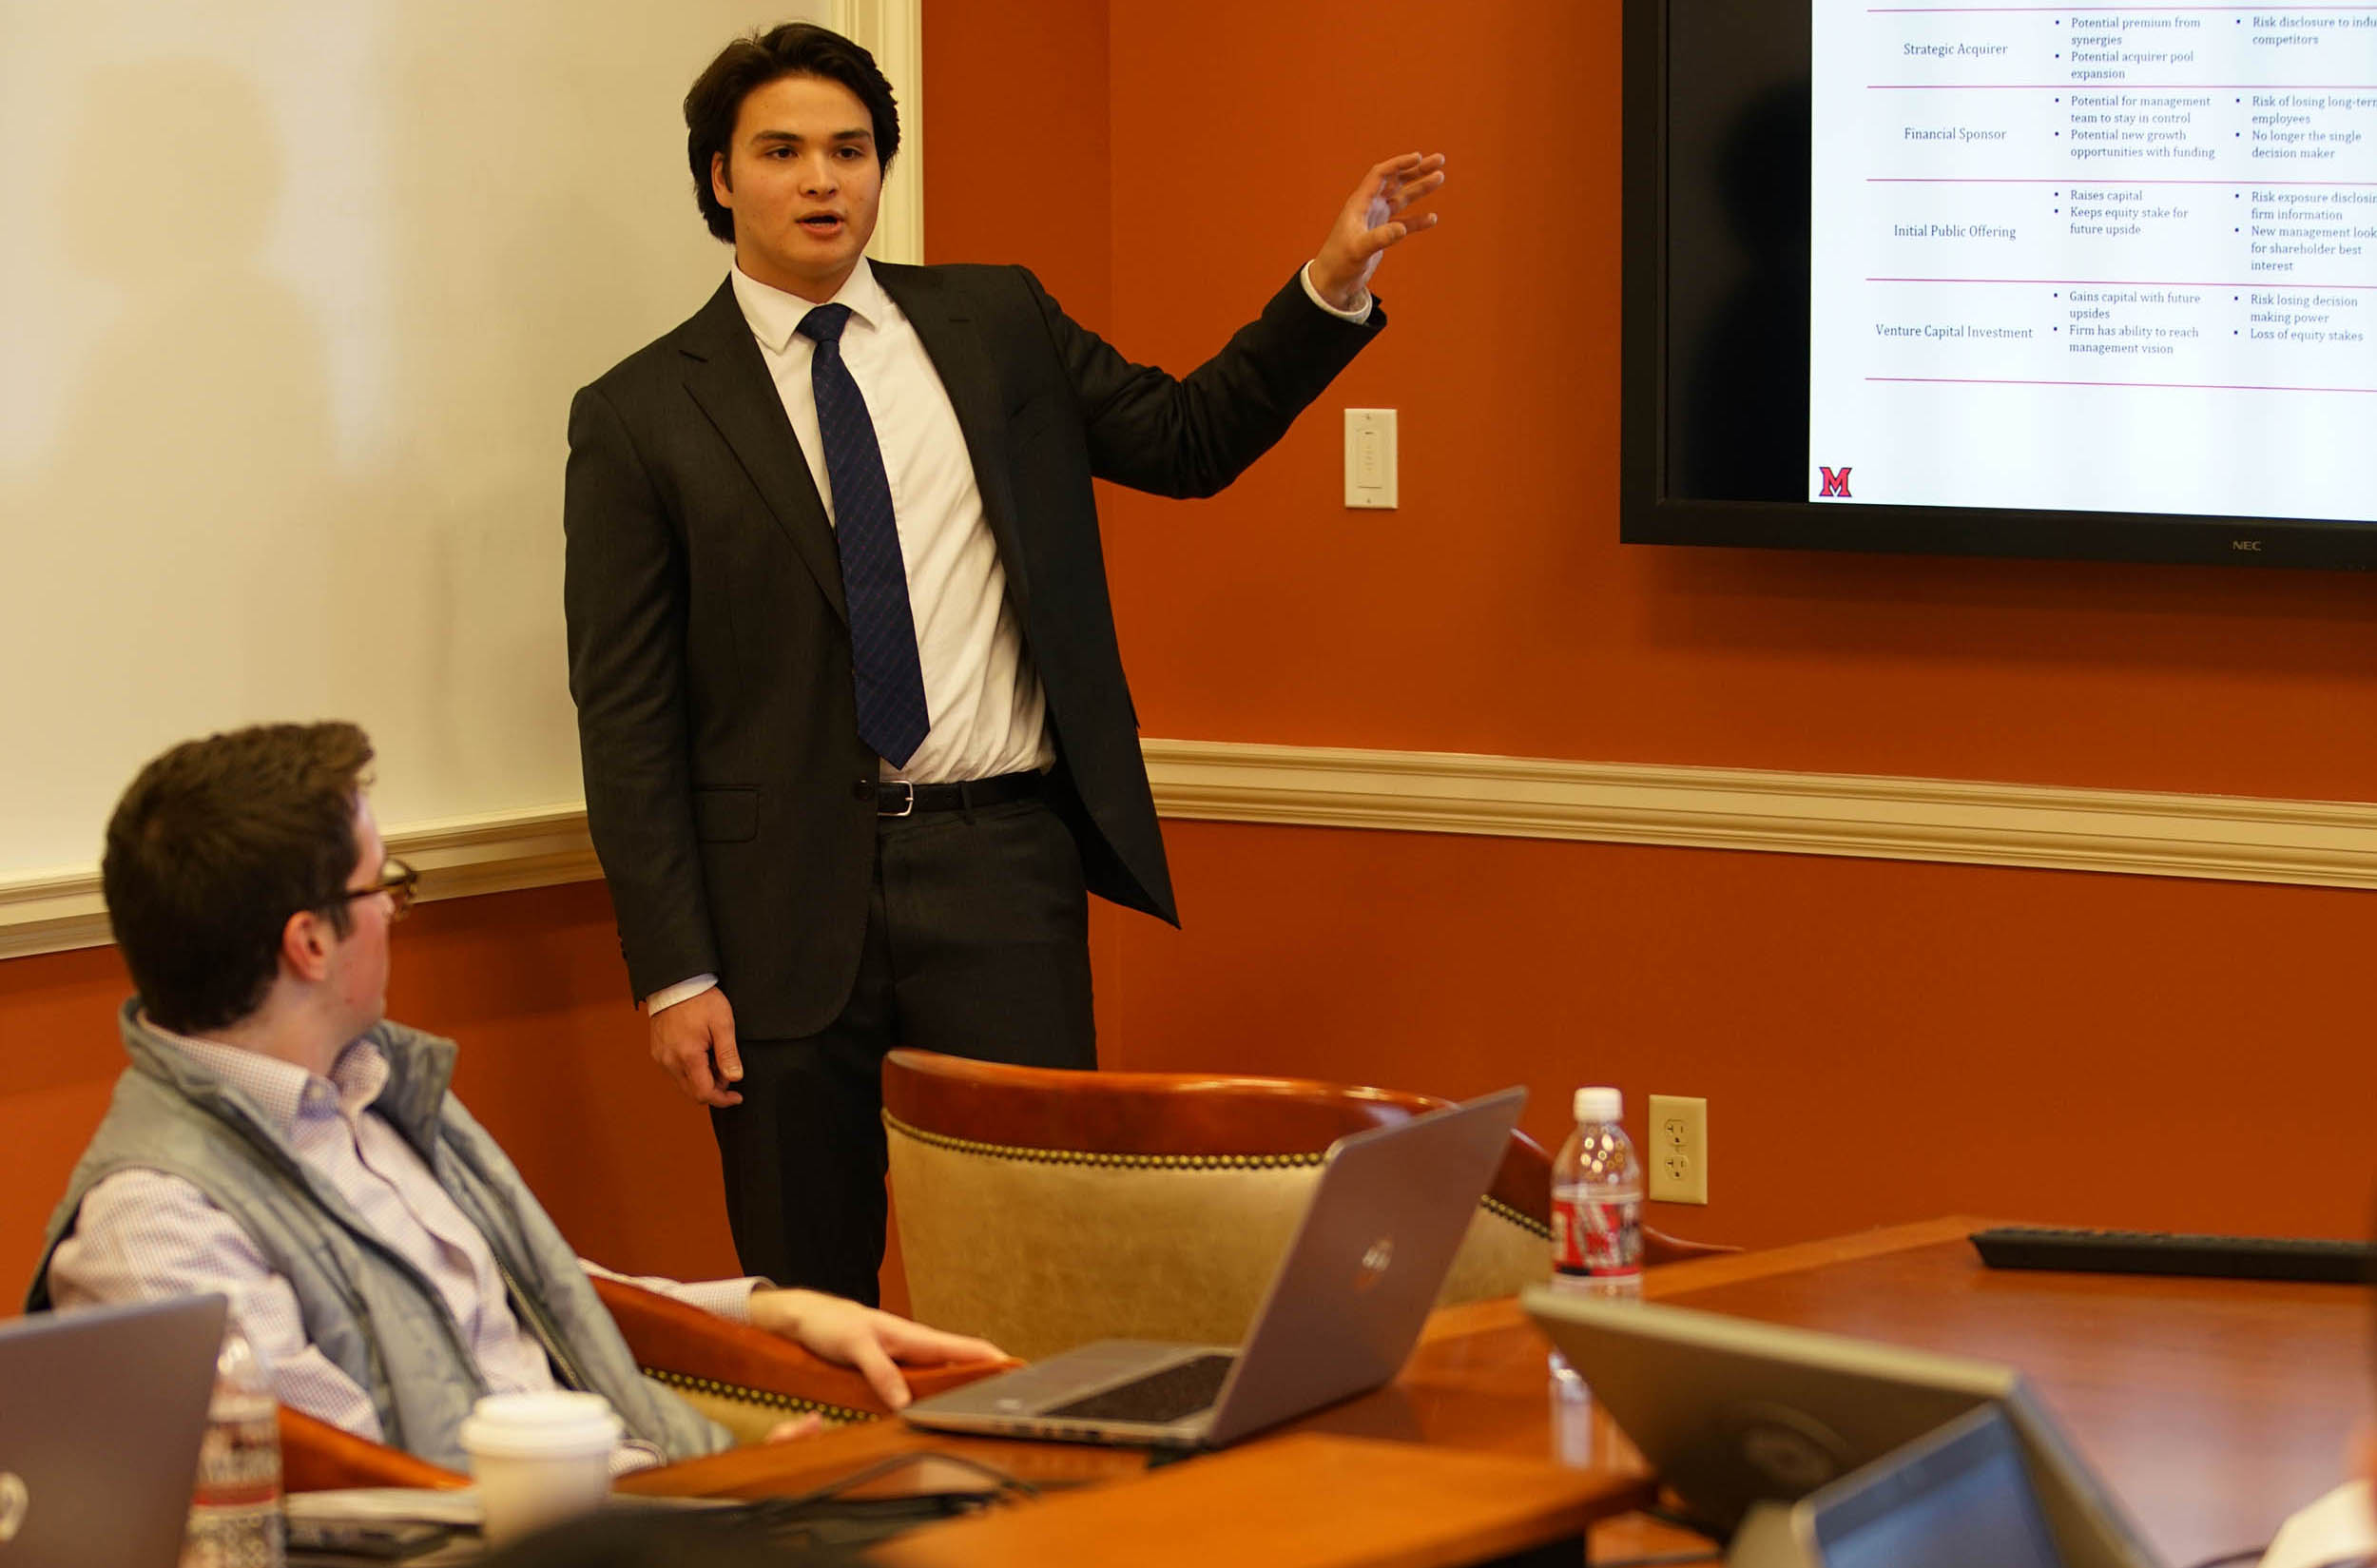 Student makes final presentation to William Blair executives